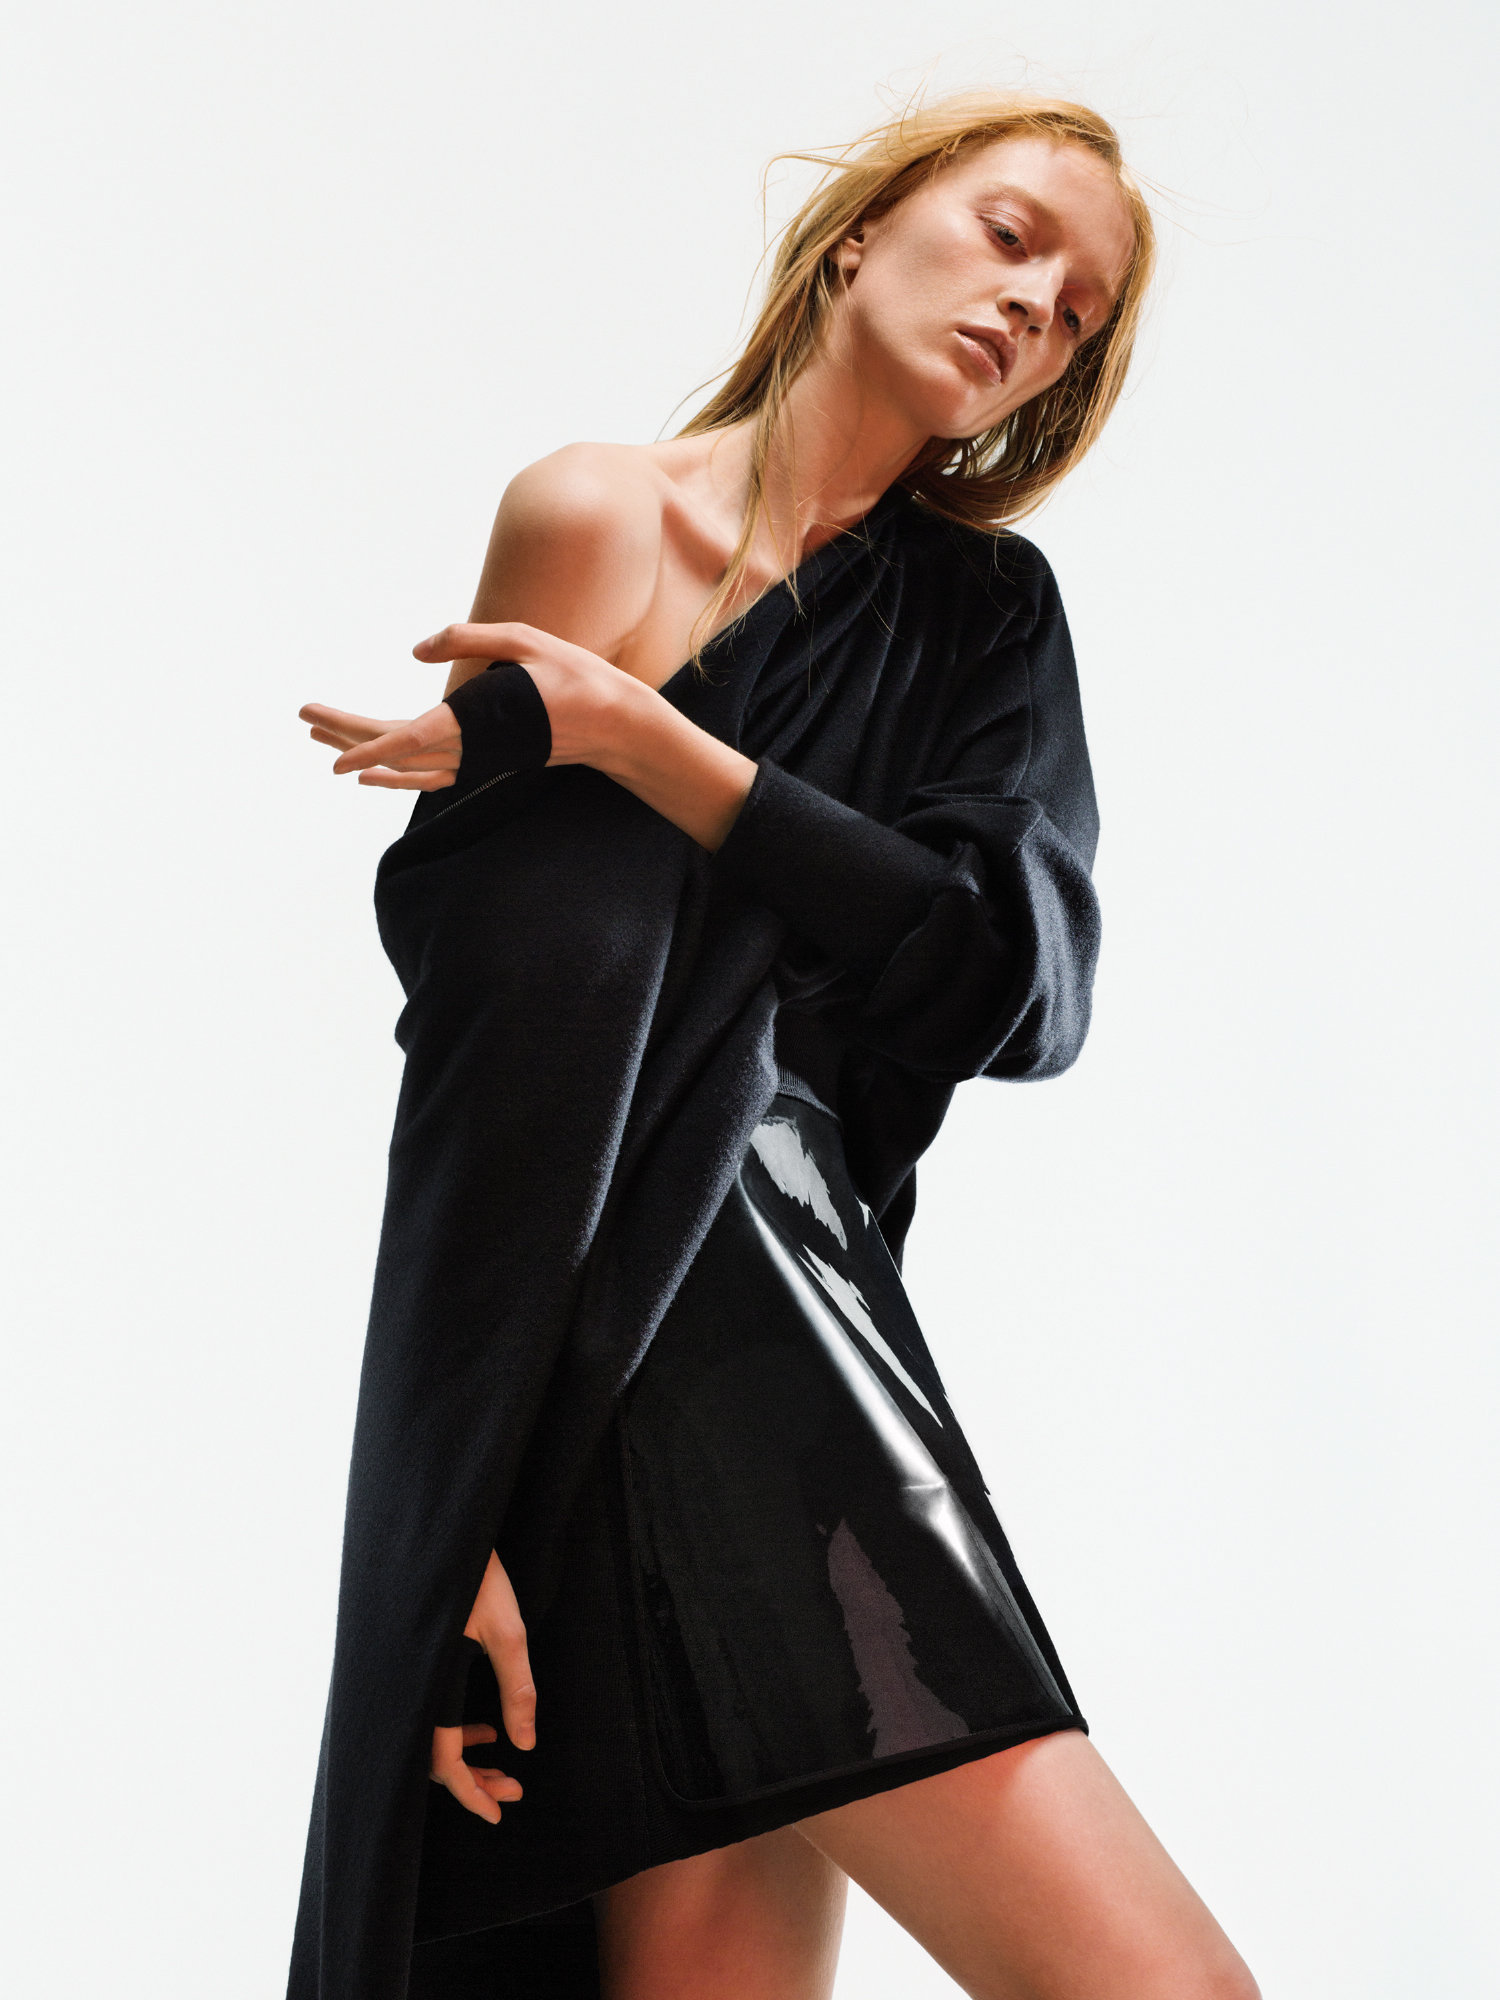 Lena Lumelsky AW16/17 Campaign